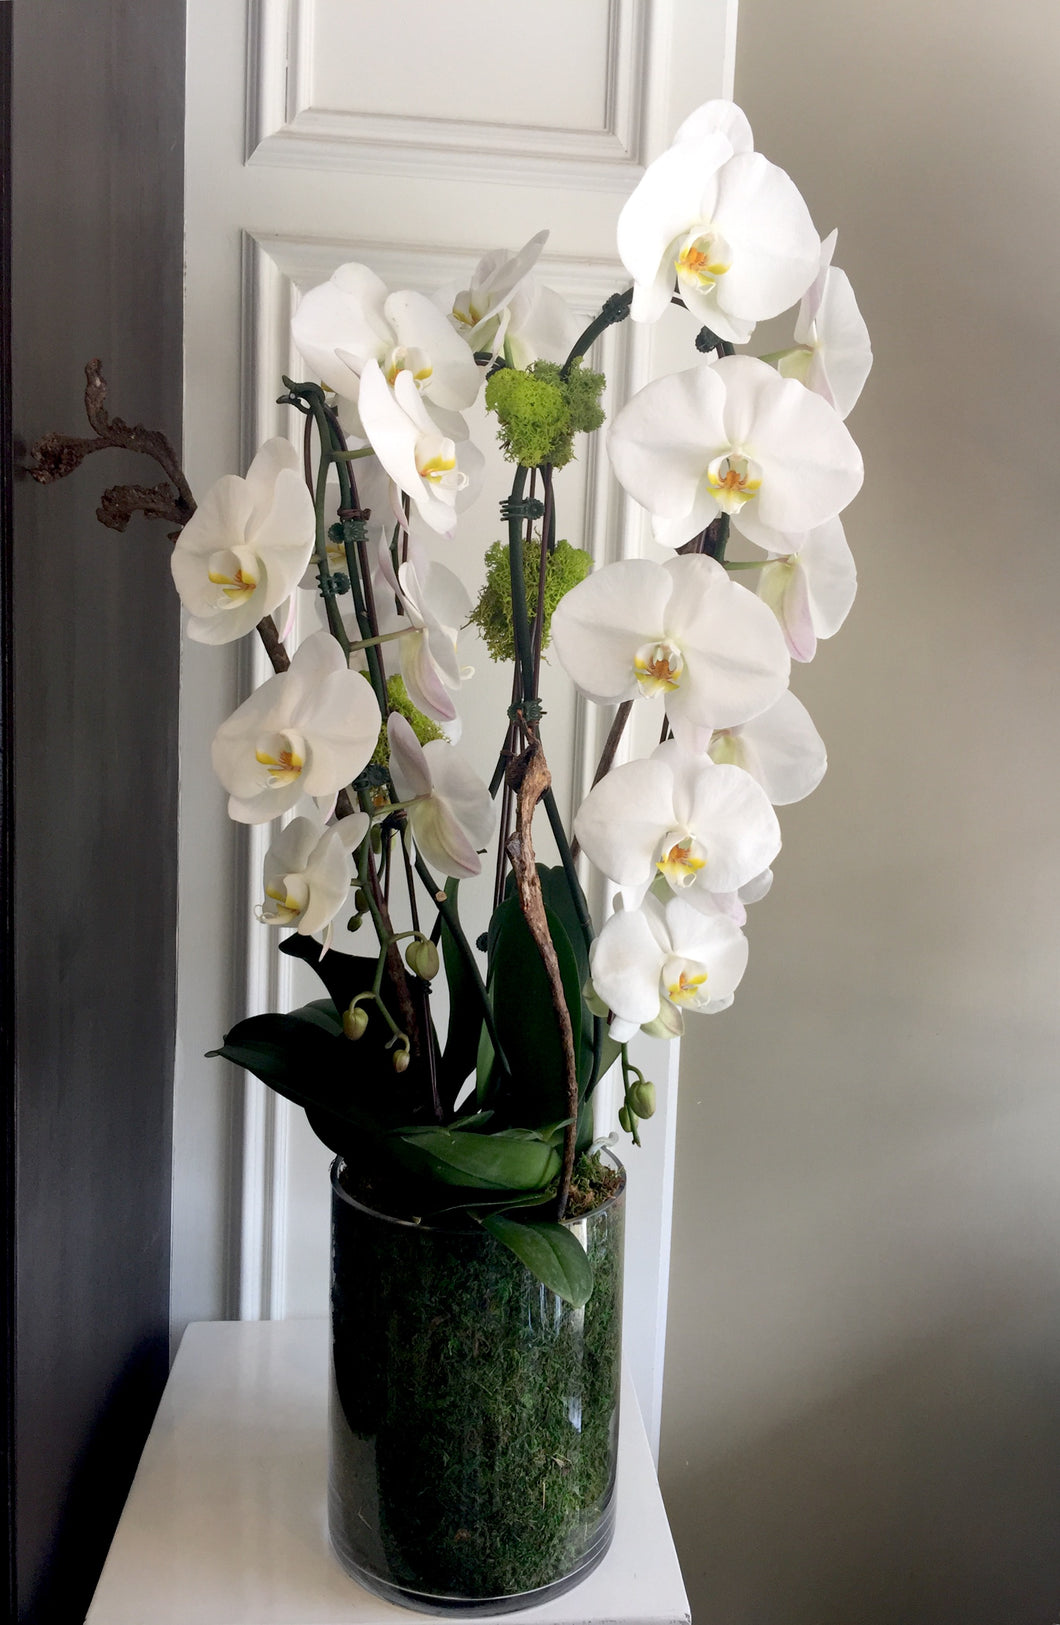 P27 - Elegant White Orchid Arrangement - Flowerplustoronto